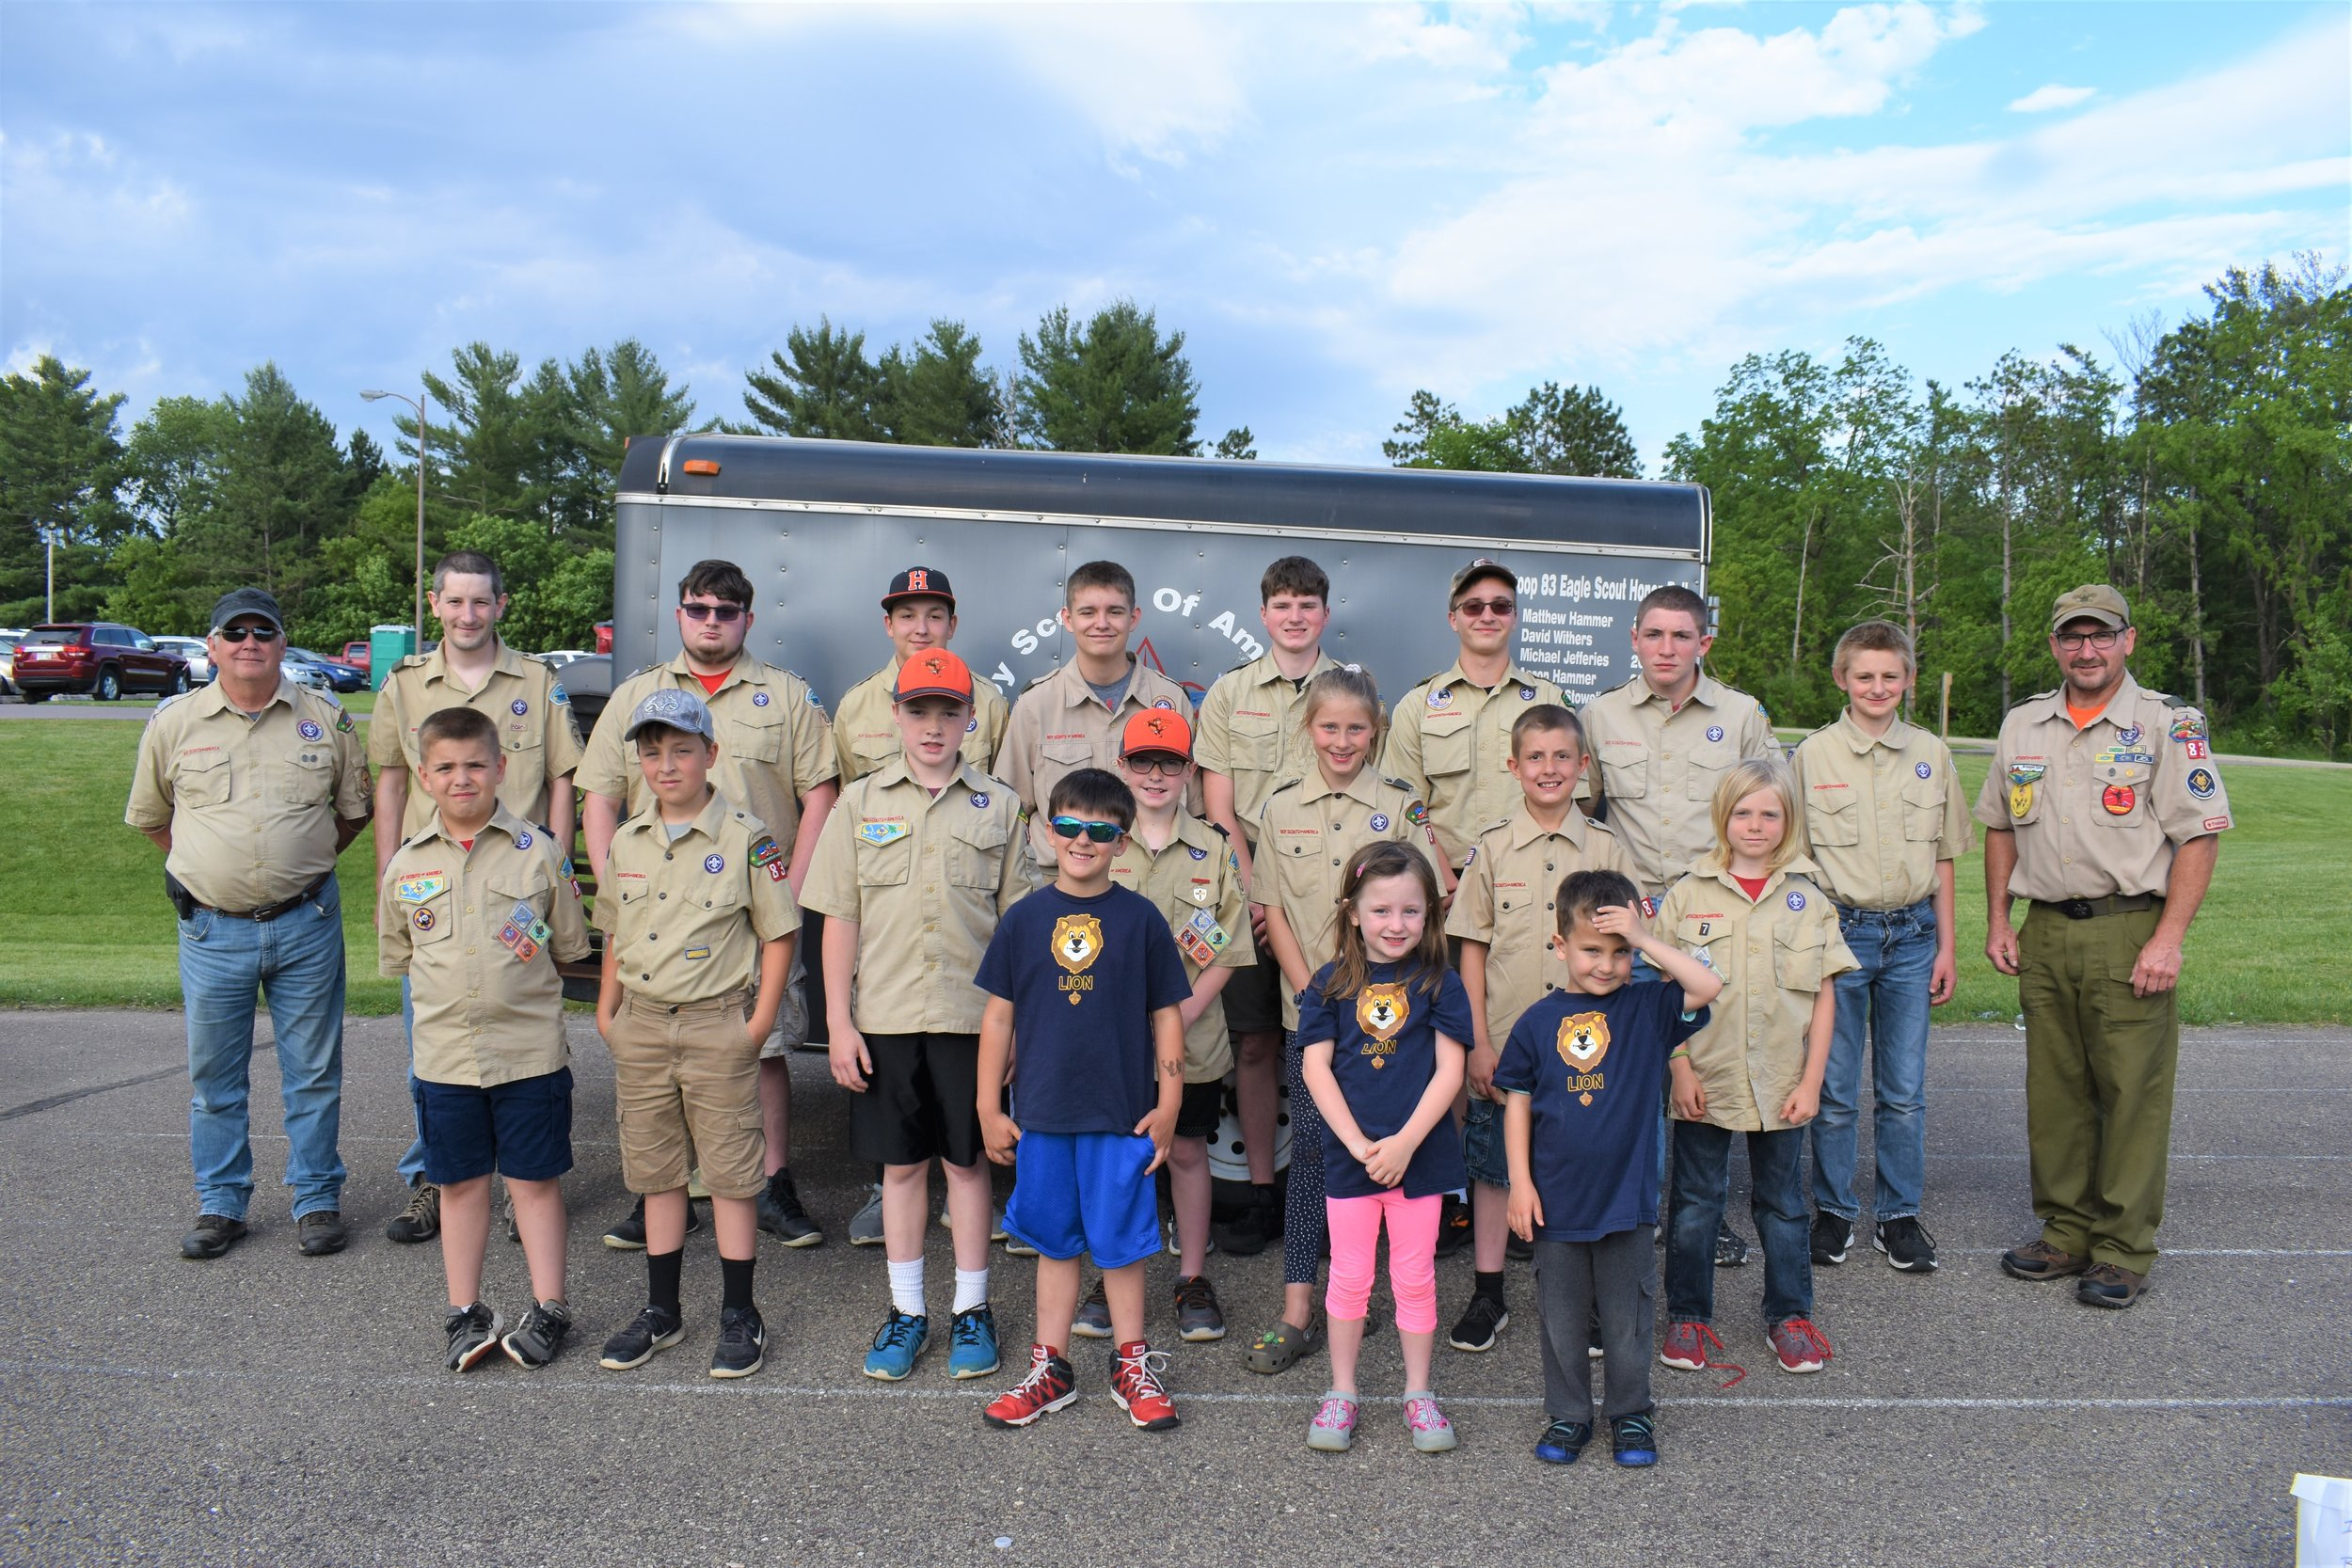 Scouts in service representing Troop 83, Cub scouts Pack 83, and Elroy Troop 88 Front row L to R- Westin, Abby, and Brock. Second row L to R- Bryce, Nick, Marty, Marshall, Lauren, Eddie, and Oliver. Back row L to R- Scout Leaders Don Hammer and Ryan Prechel. Scouts PJ, Nathan, Niles, Nick, Ethan, Jacob, Owen, and Scout Leader Tom Stowell